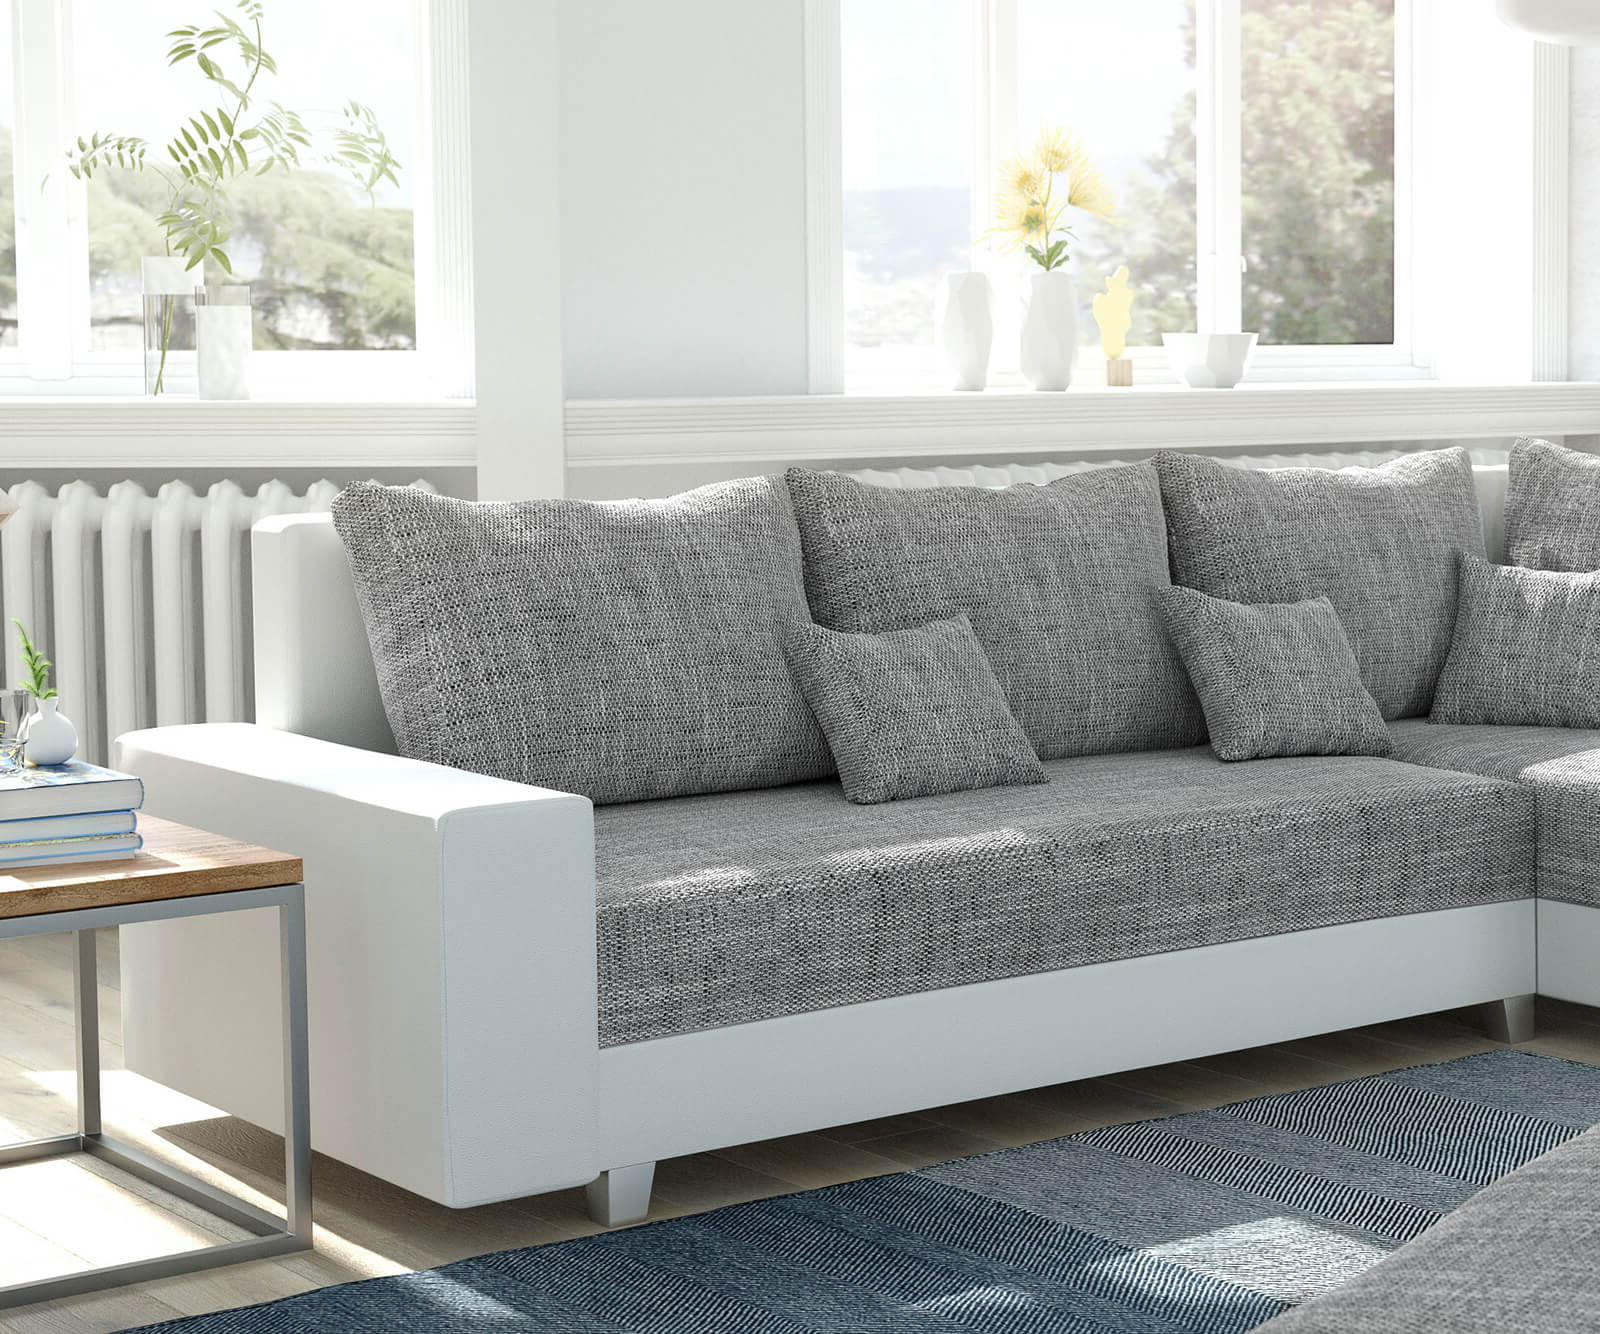 couch panama hellgrau weiss ottomane rechts mit hocker ecksofa modular. Black Bedroom Furniture Sets. Home Design Ideas